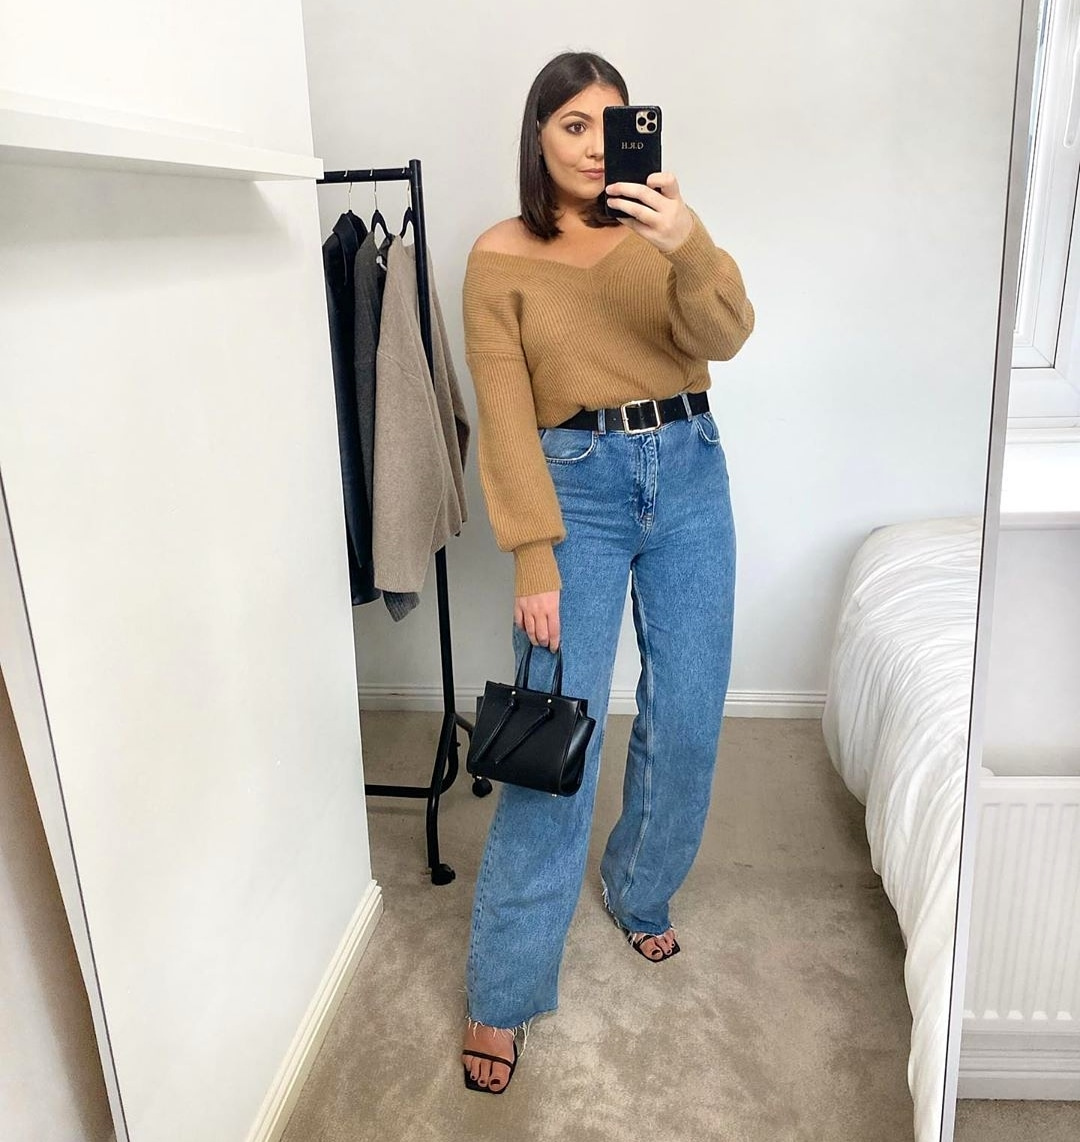 Image for Saturday stylin' 🍂  @gabriellarose_h styles the camel penny jumper 🛒  Shop now 👉🏽 https://t.co/5y08kiUfWH https://t.co/N0siANyoRo